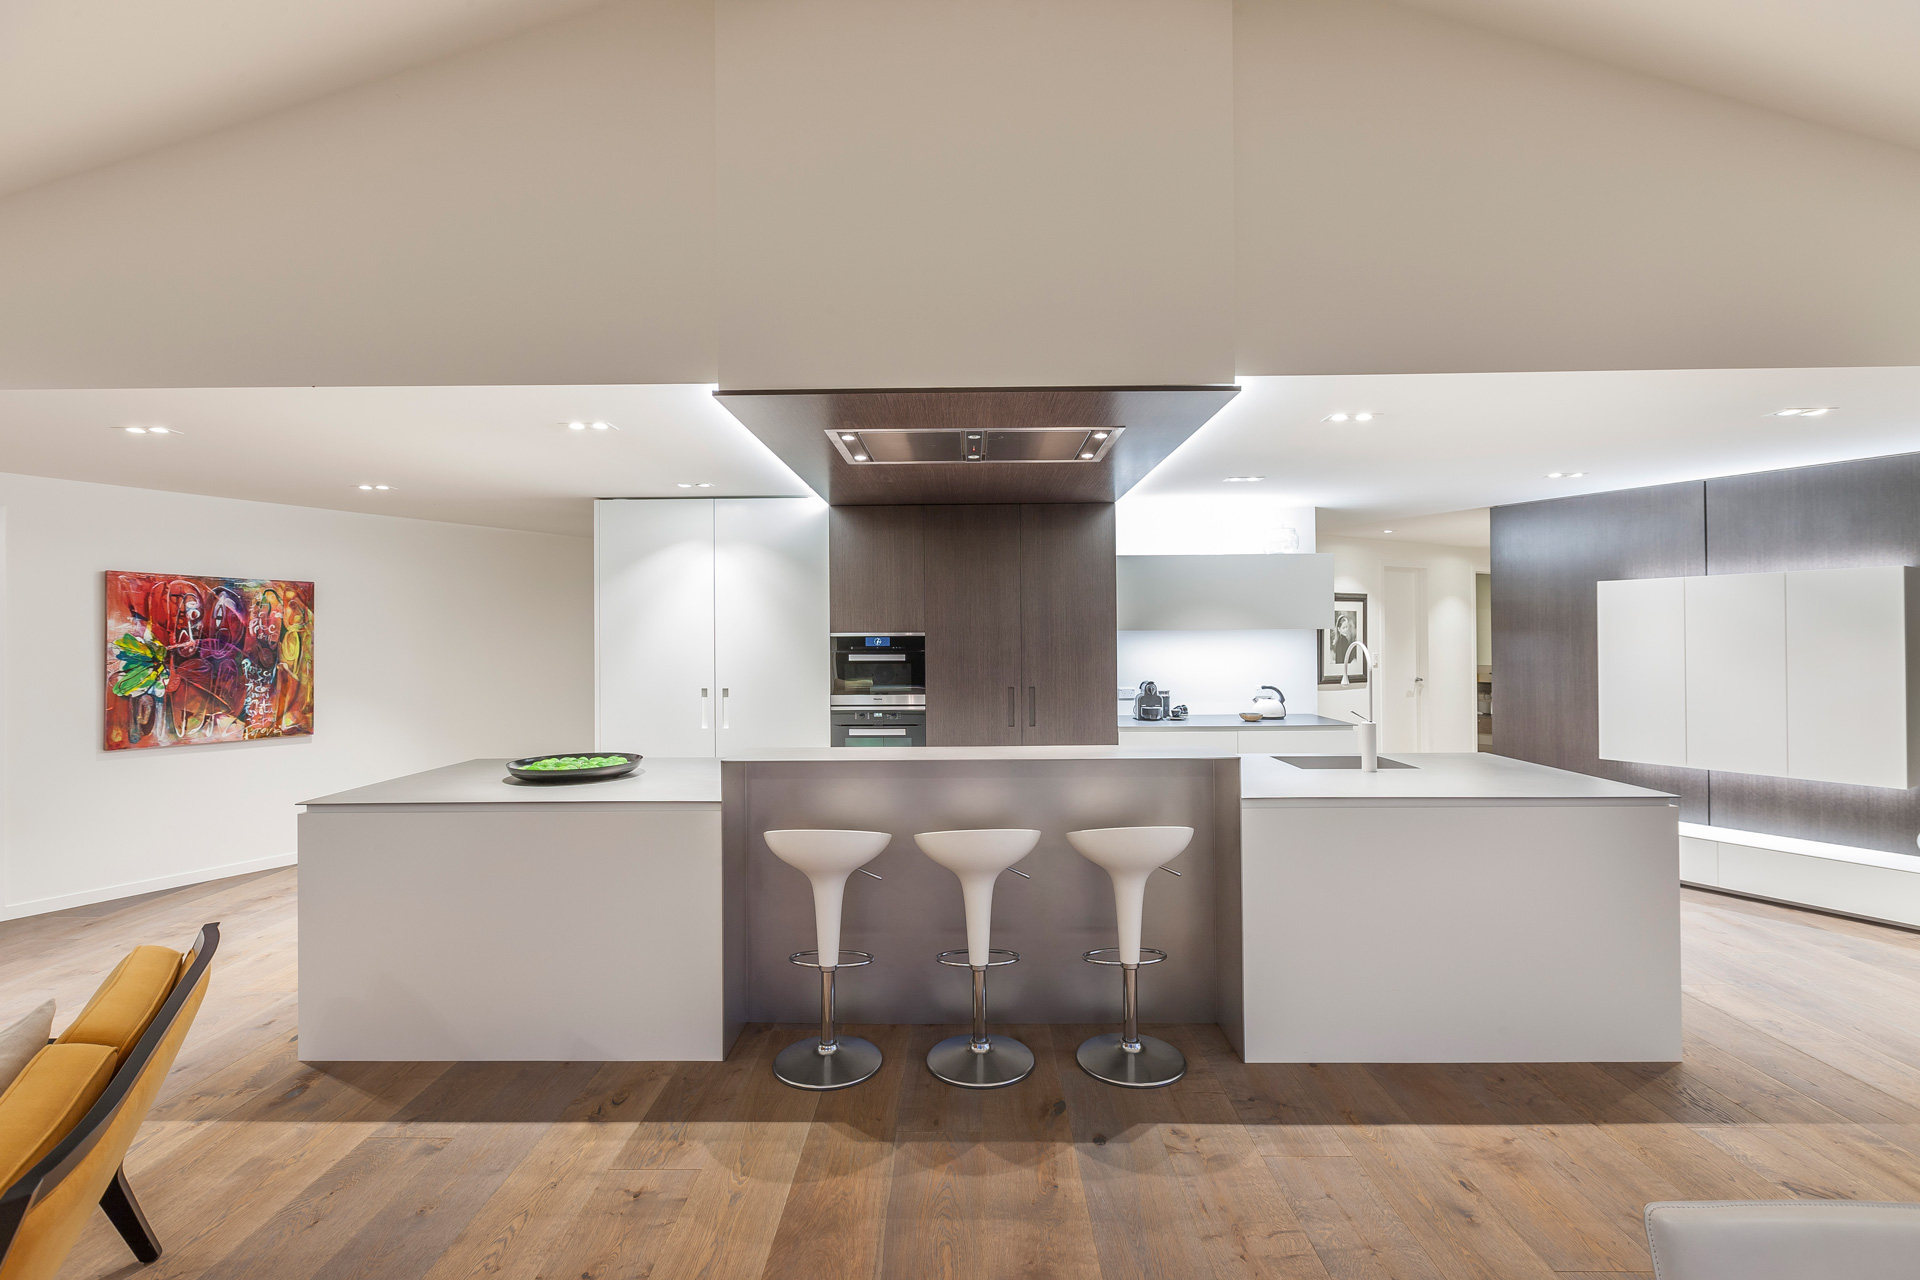 The beauty and understated grandeur is yet another masterclass in design by international award-winning kitchen designer Celia Visser.